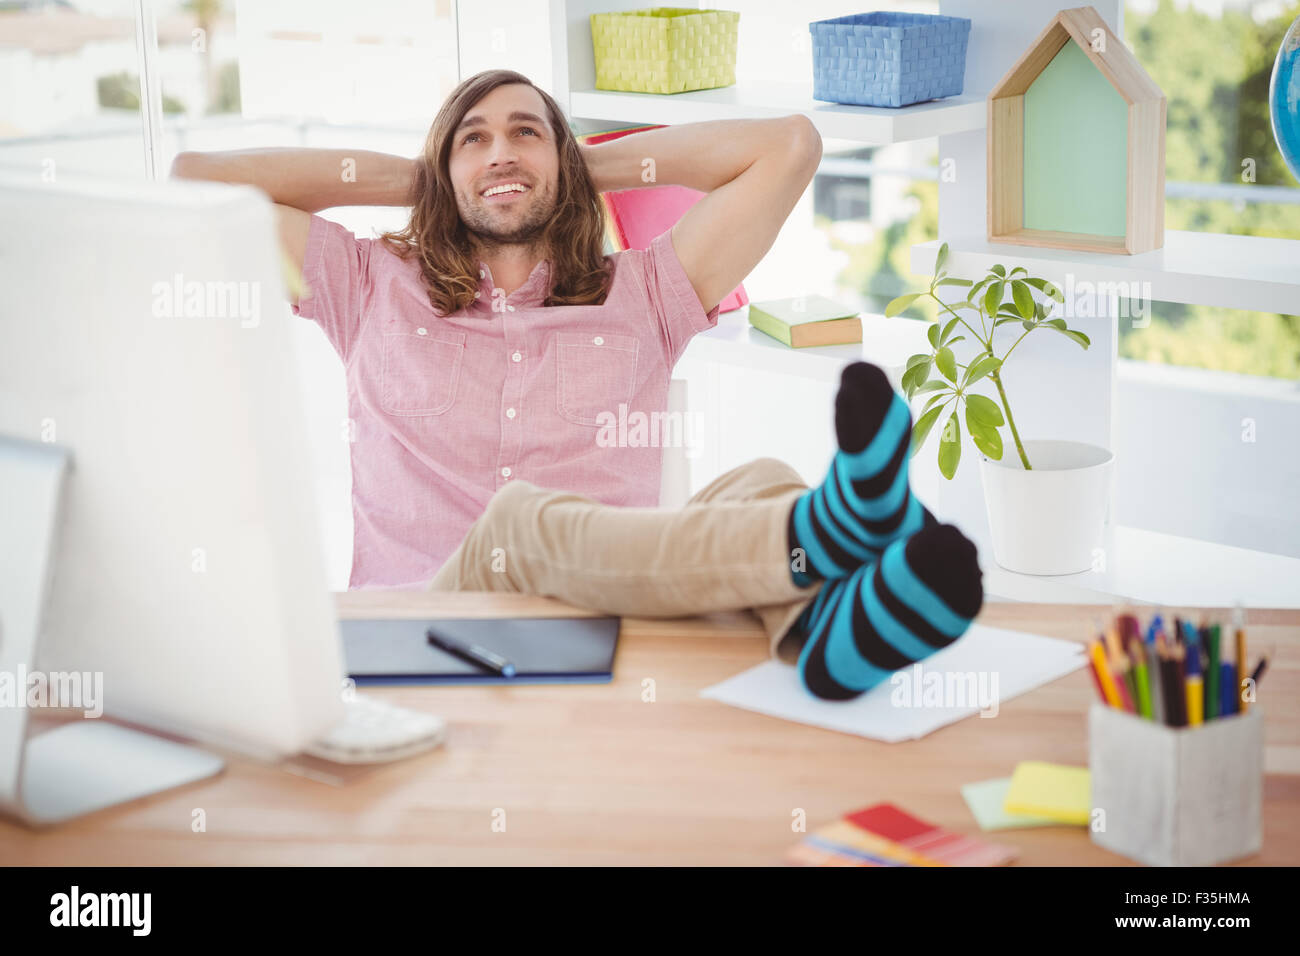 Hipster relaxing with legs on desk - Stock Image